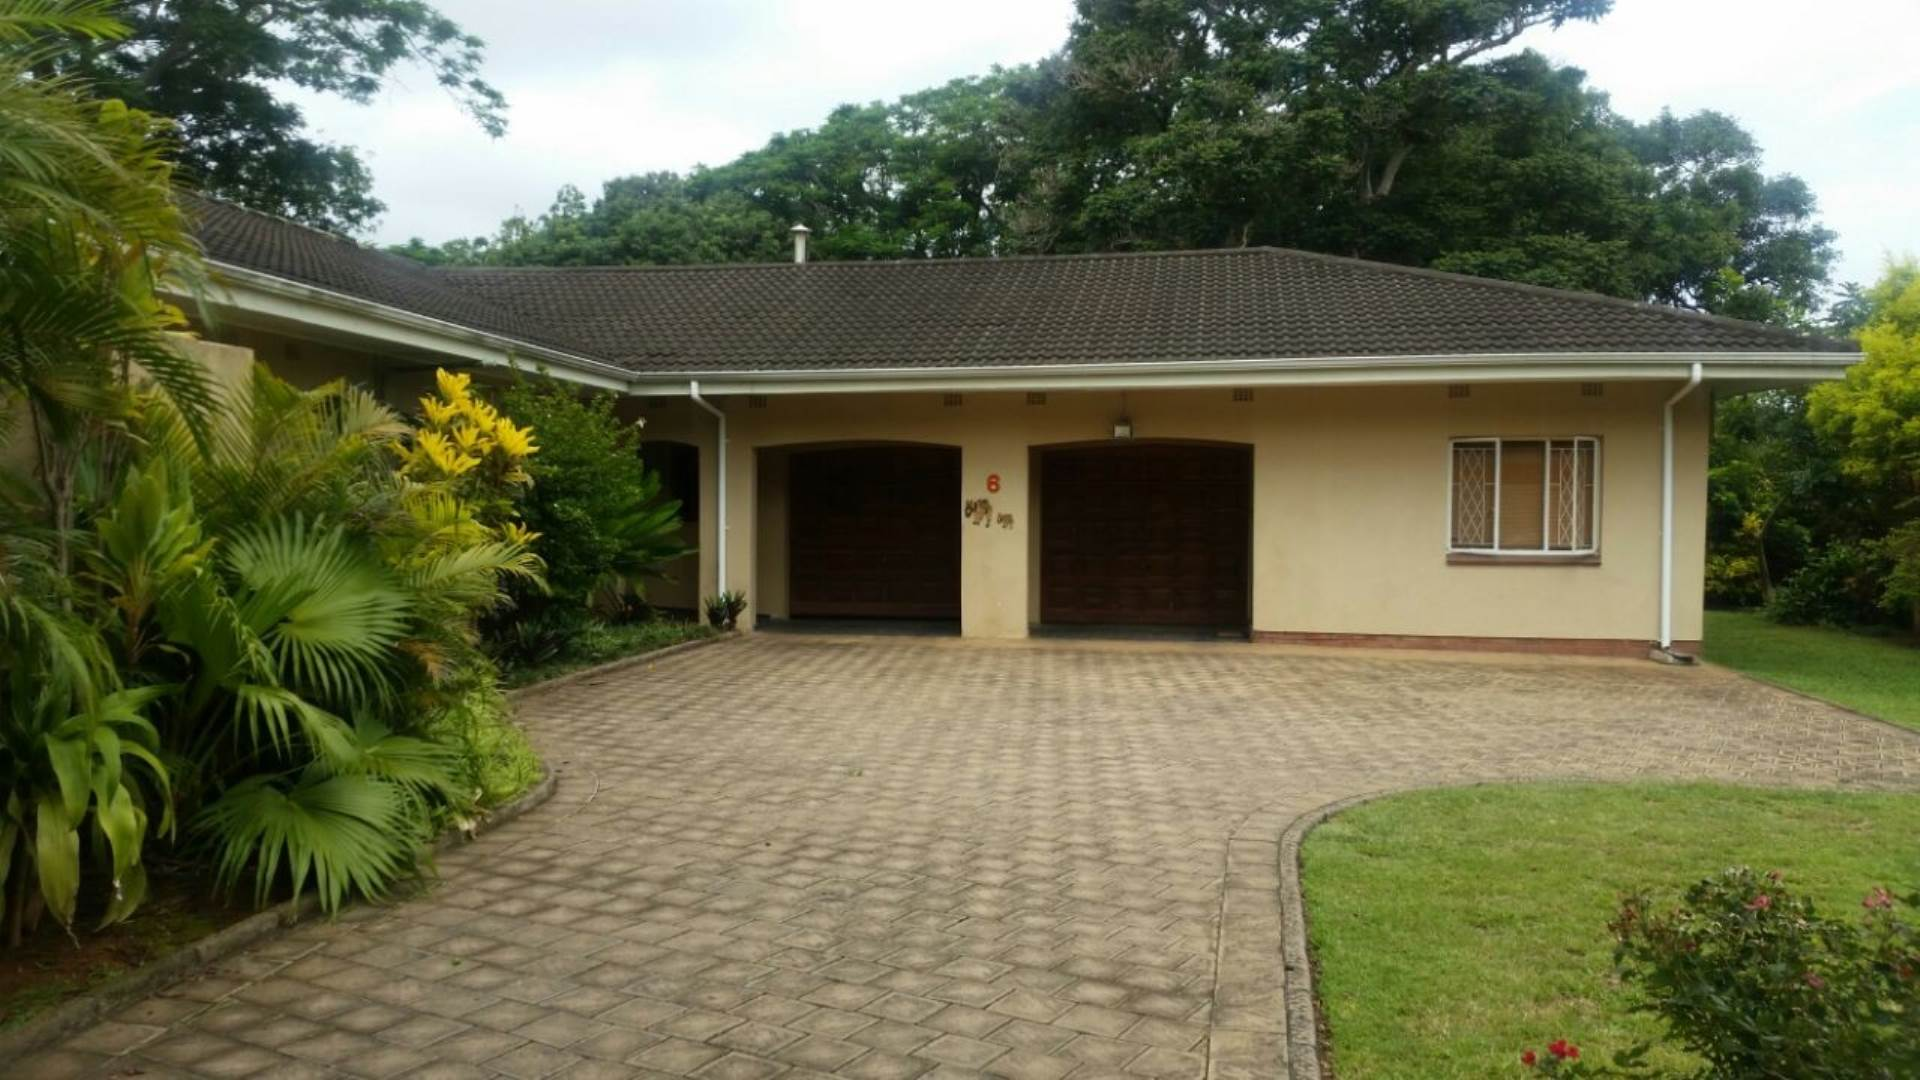 5 BedroomHouse For Sale In Kwambonambi